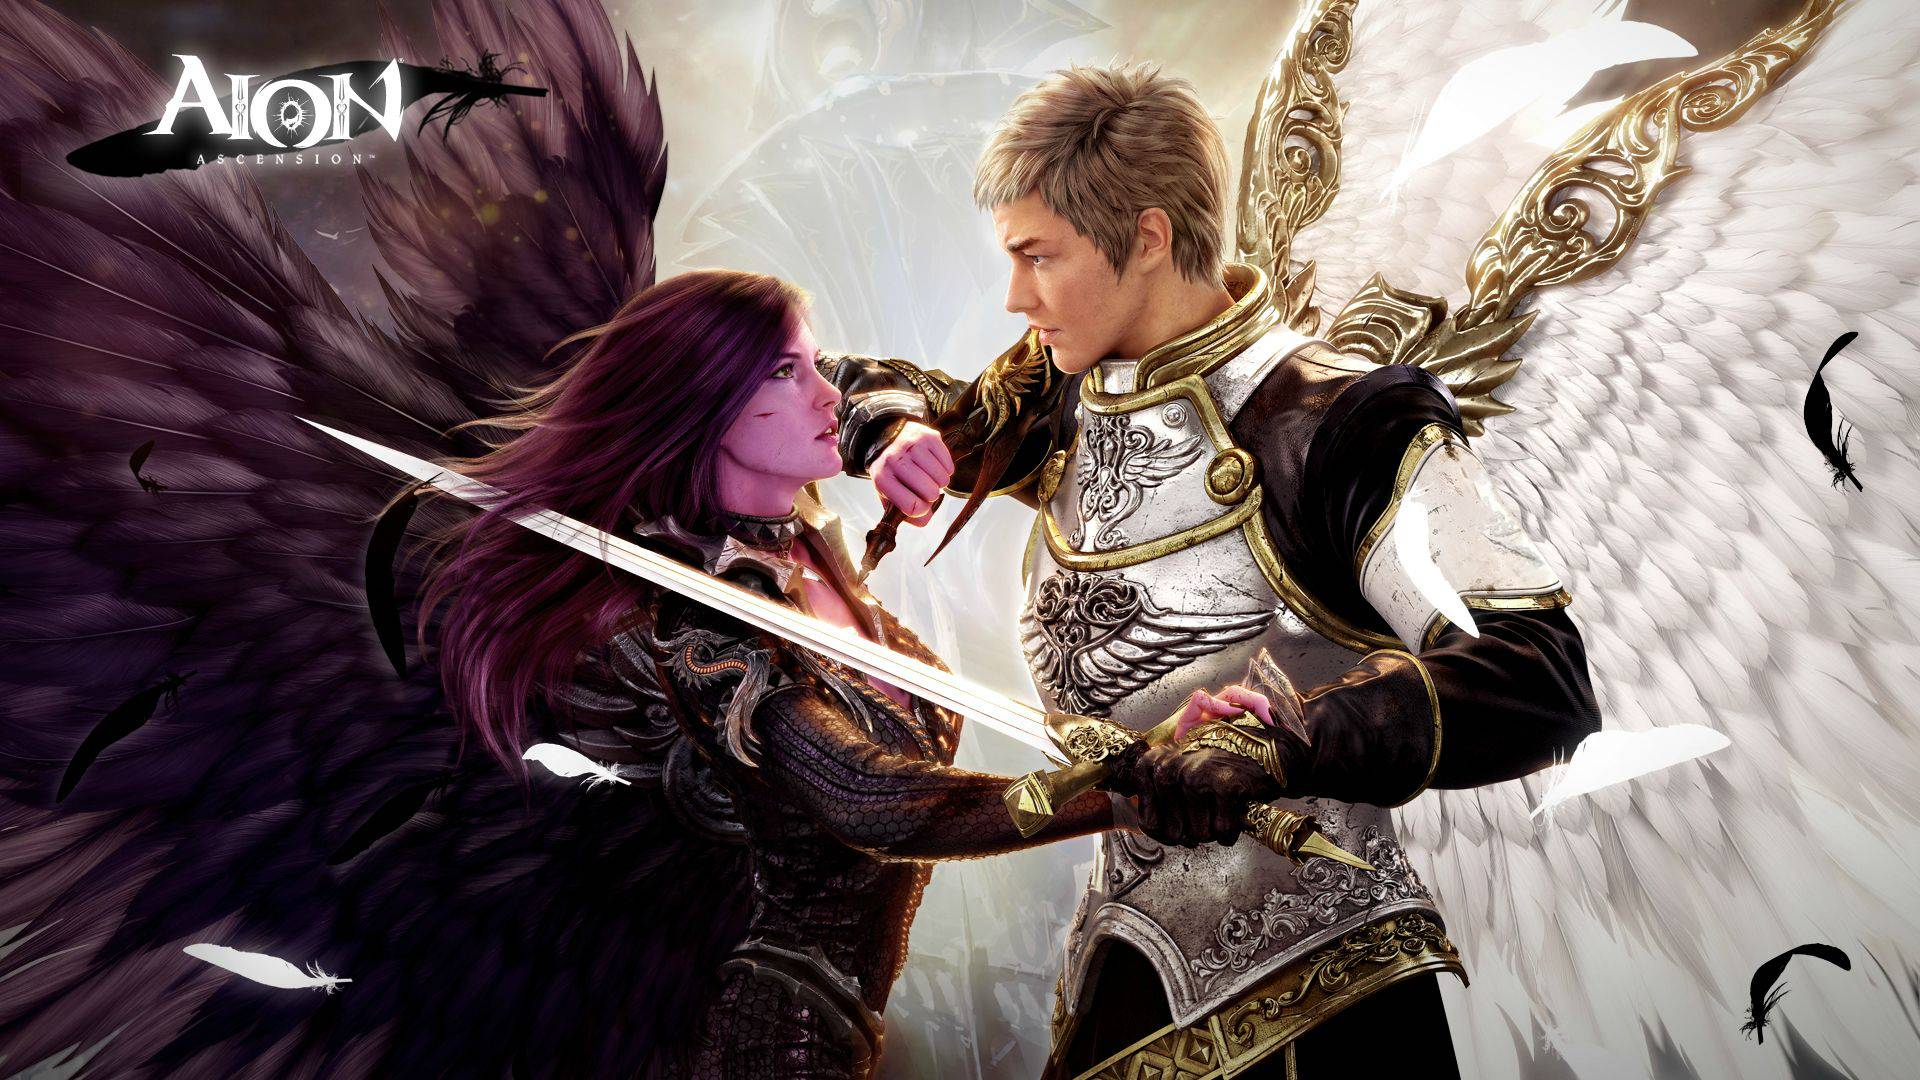 Aion: Ascension gets a F2P Date in North America! - MMO Bomb